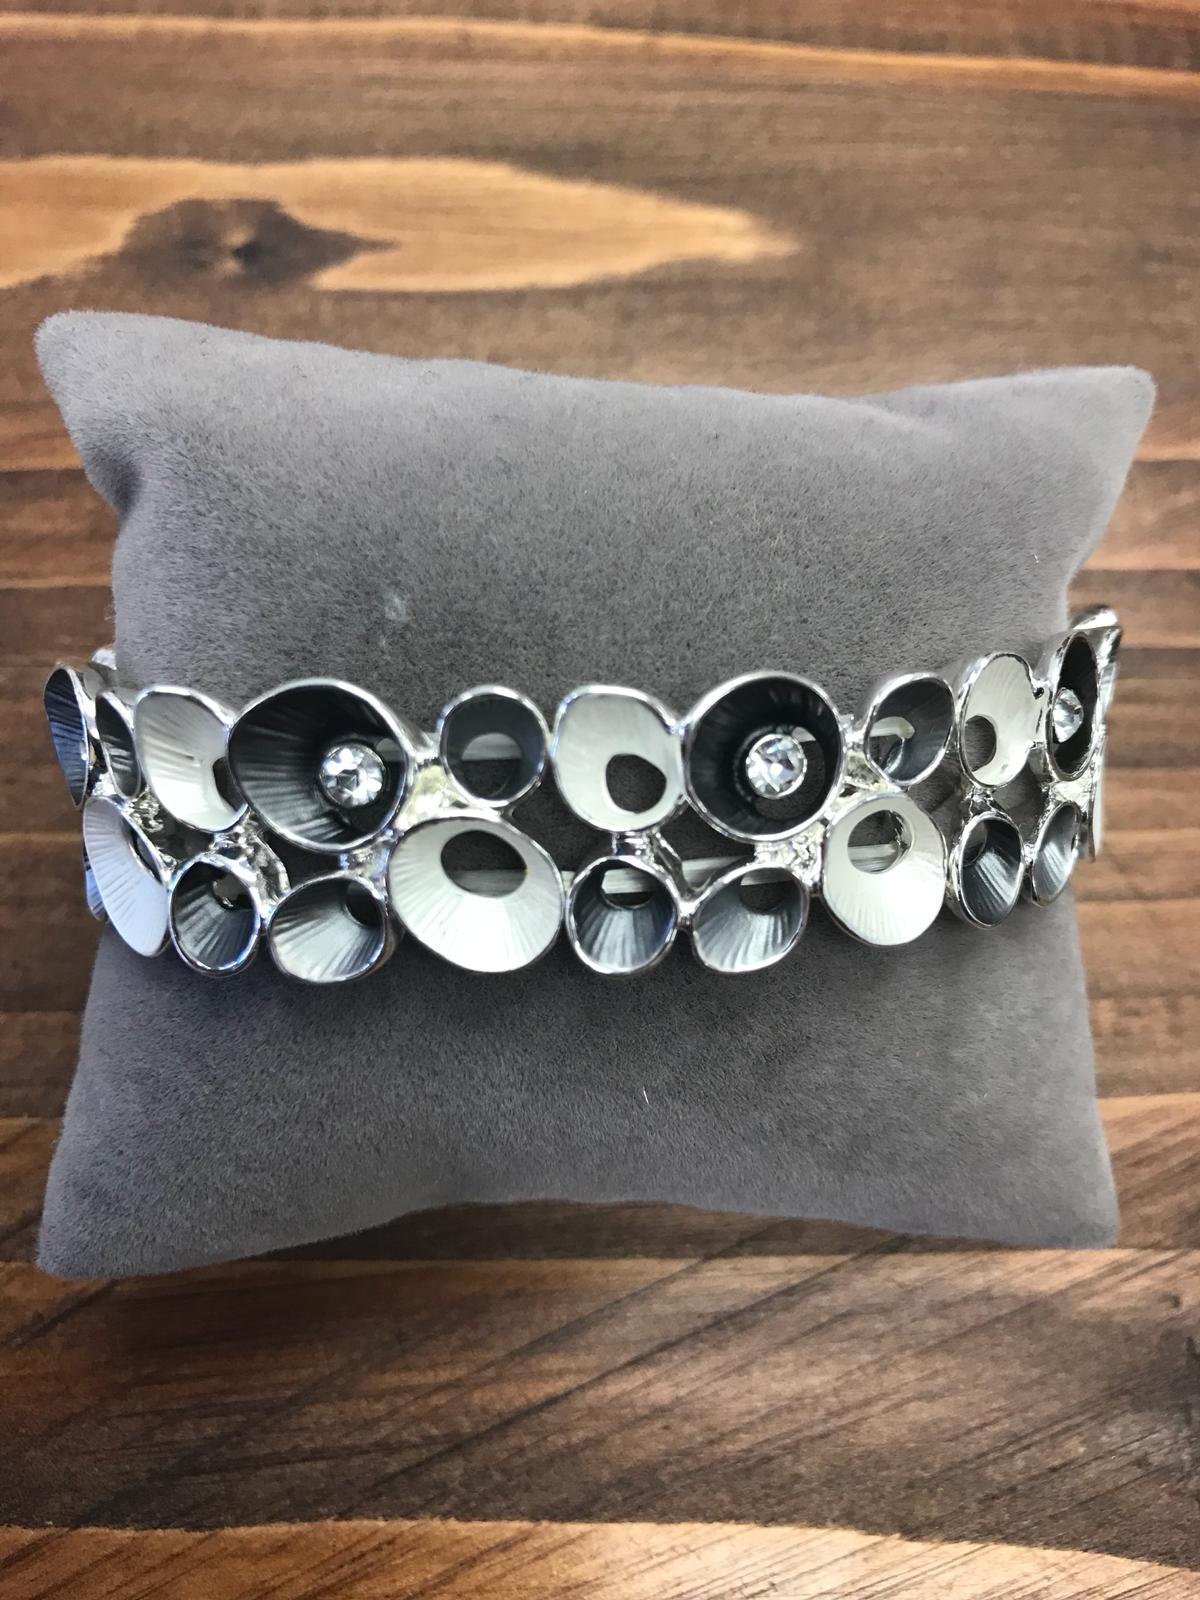 Enameled Style Bracelet with Black and White Stylized Flowers